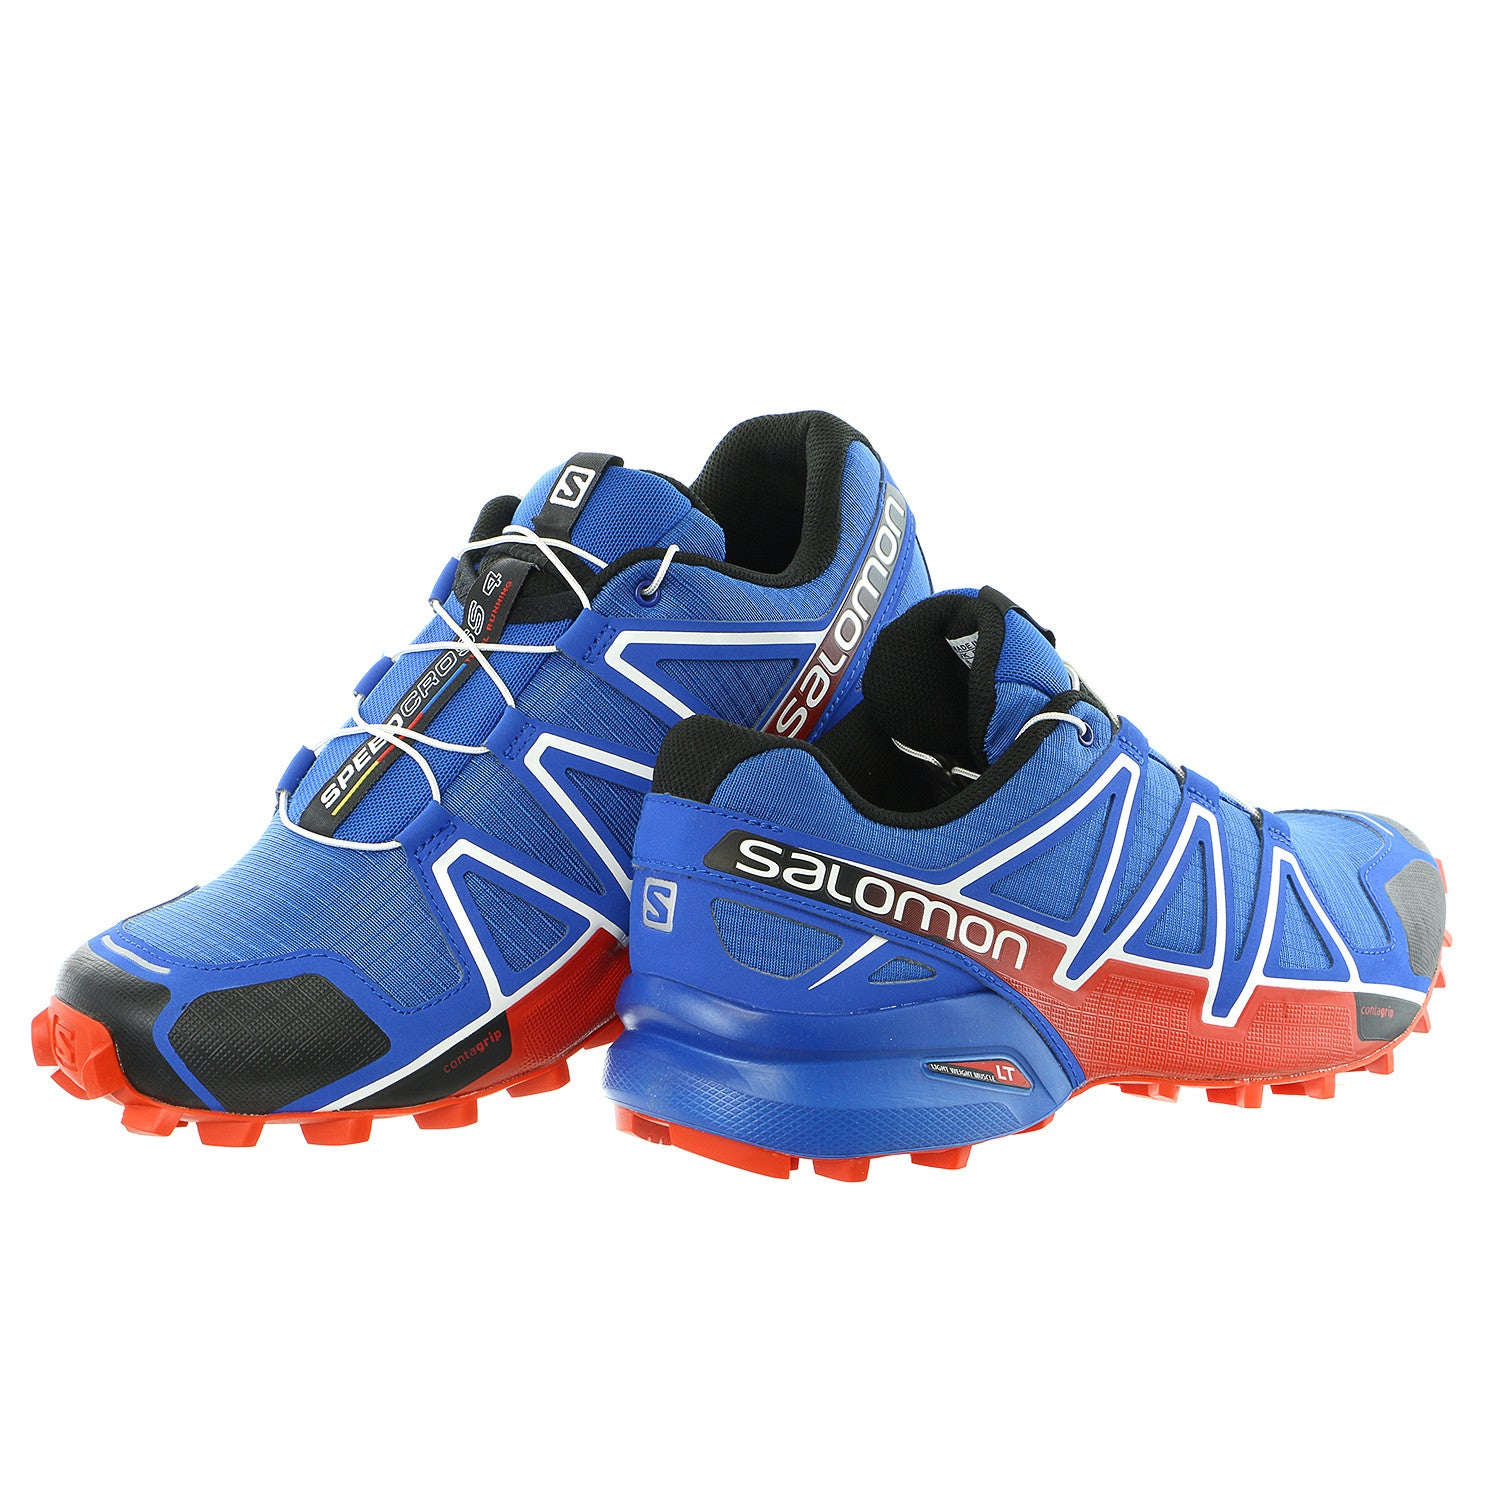 1857489cca6c Salomon Speedcross 4 Trail Running Shoes - Men s - Shoplifestyle